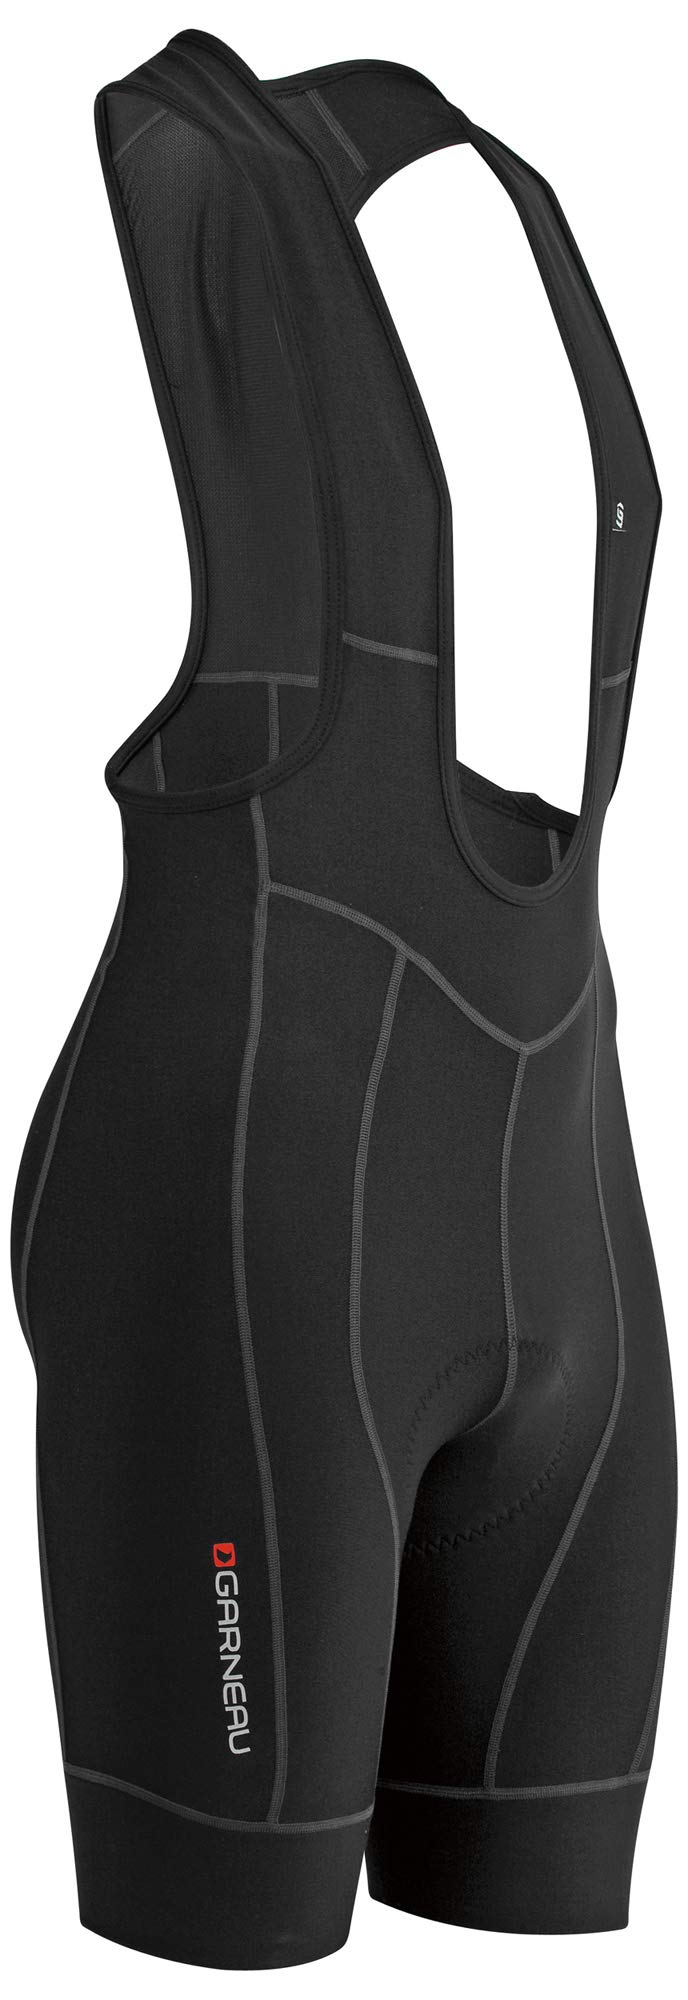 Louis Garneau Men's Fit Sensor 2 Padded, Breathable, Compression Cycling Bib Shorts, Black, XX-Large